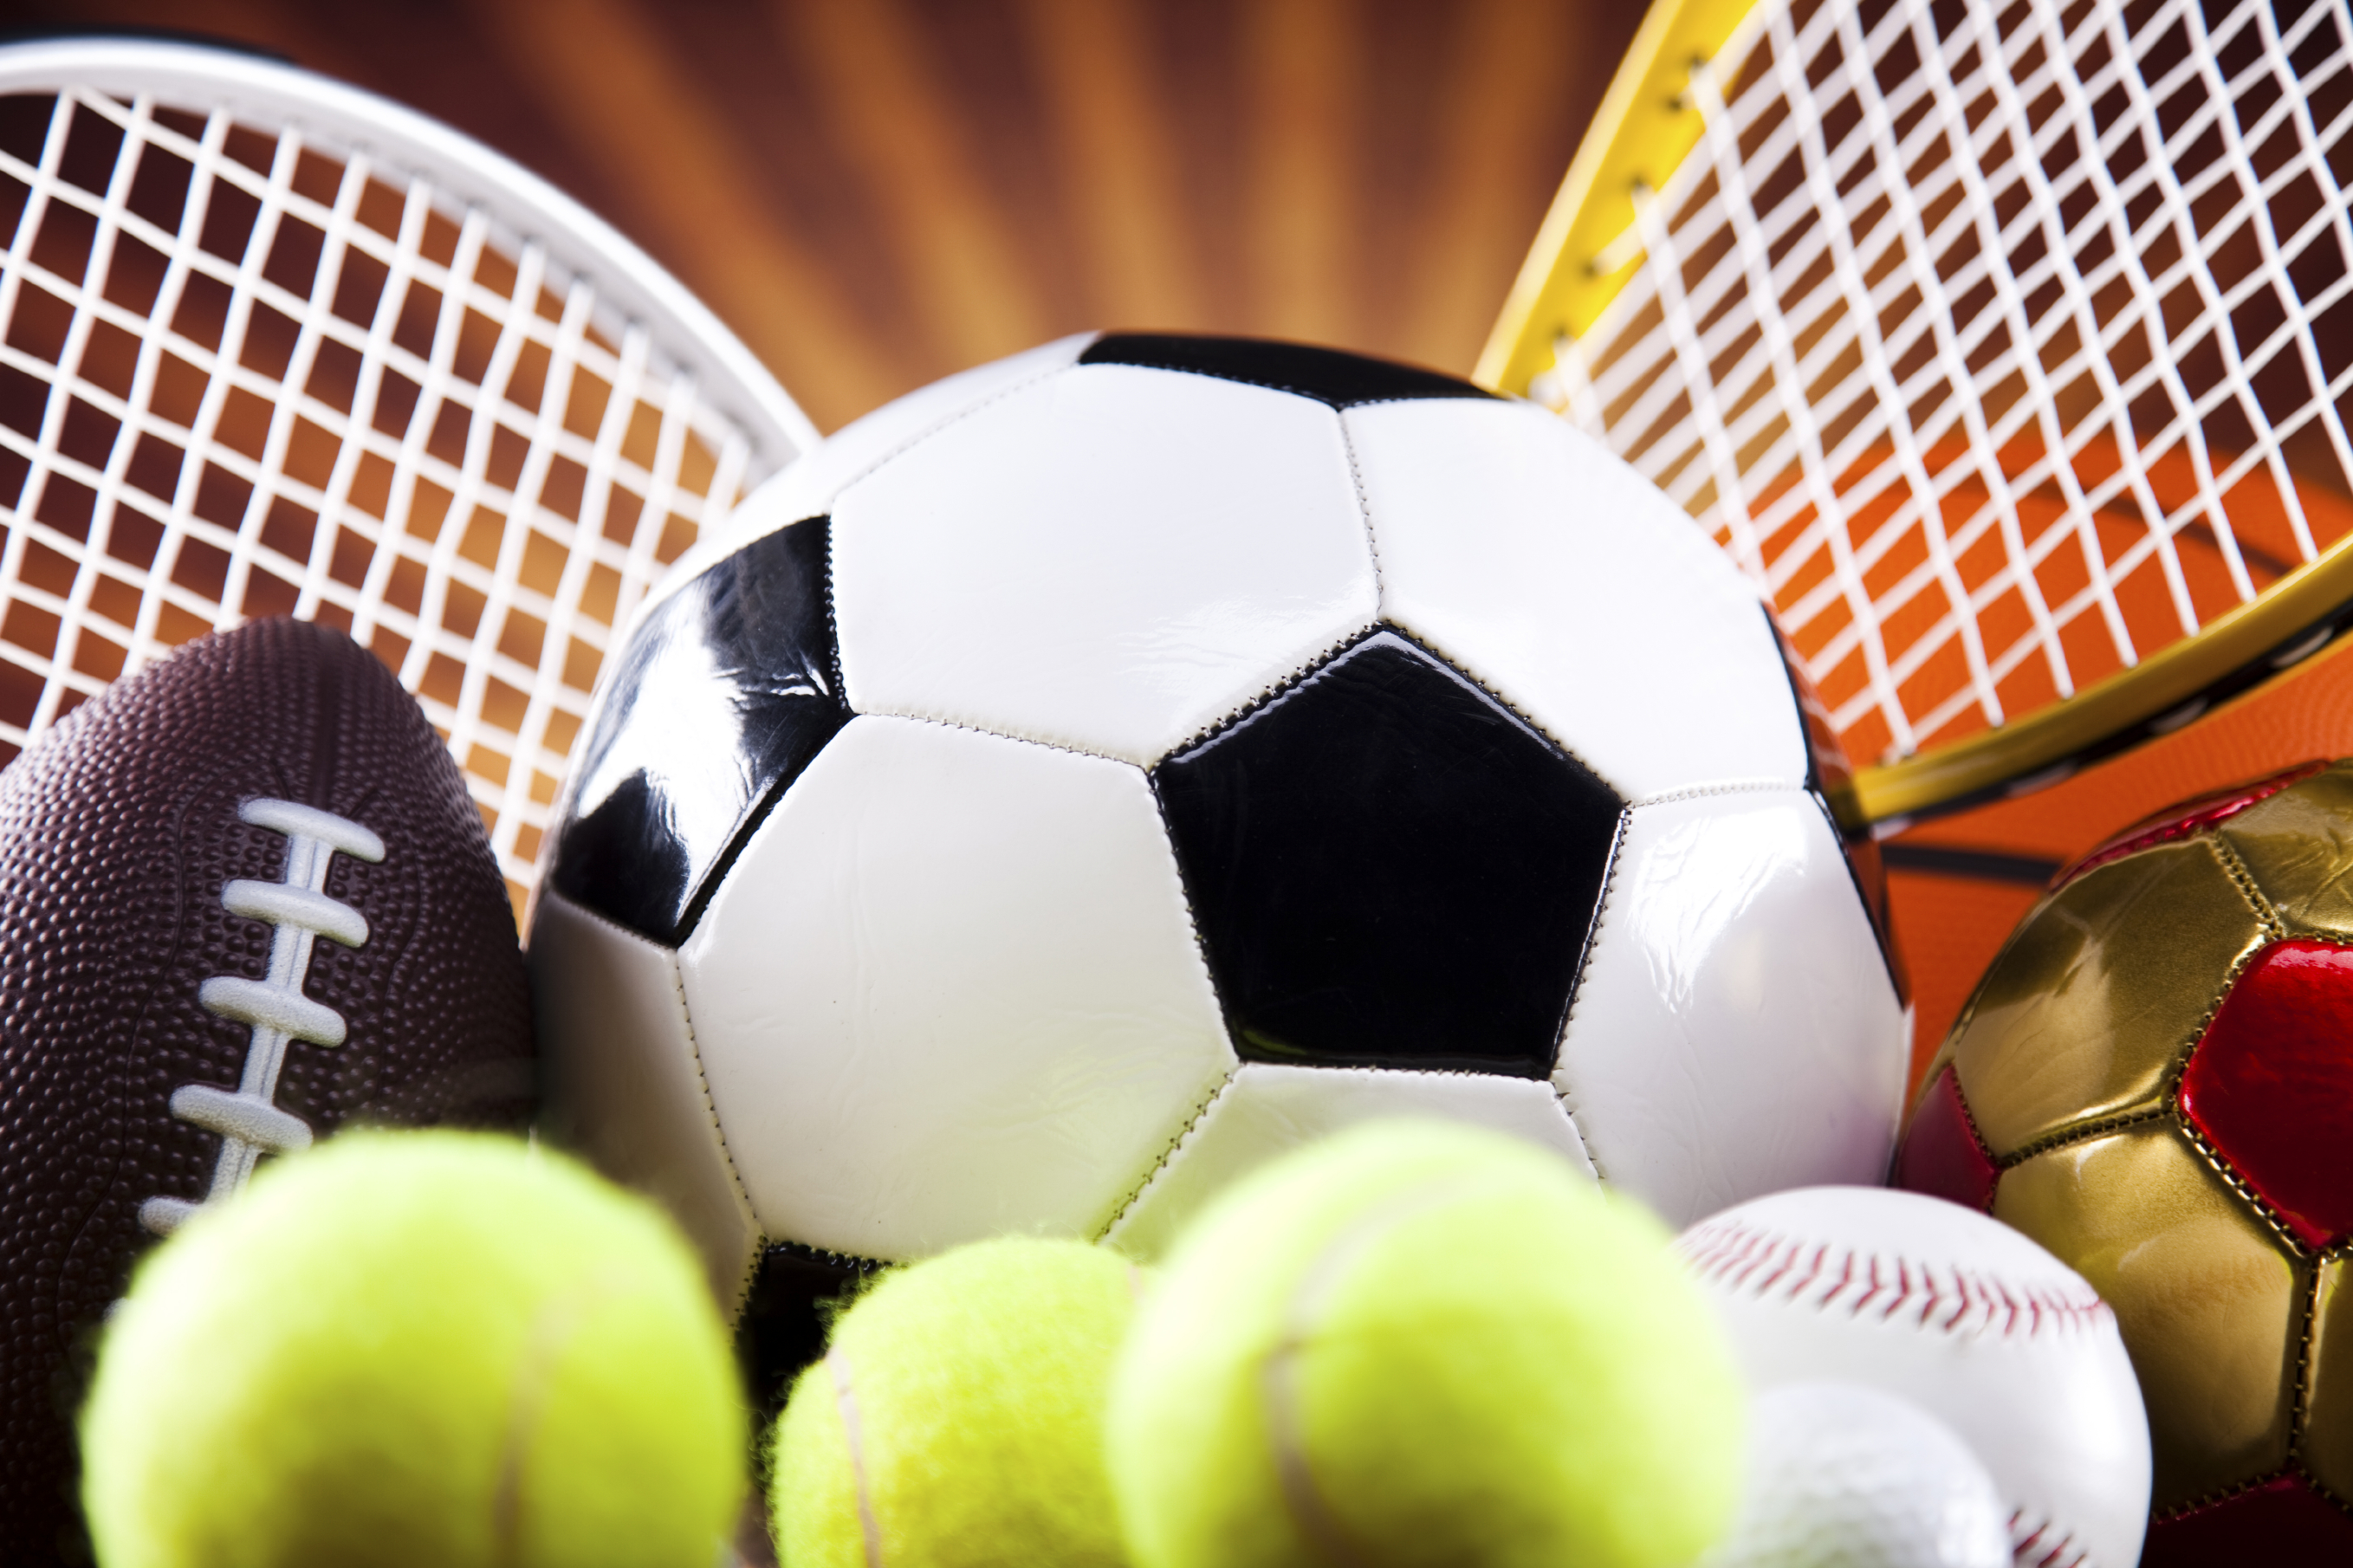 Trademark Class 28: Games and Sporting Goods | Toys and ...